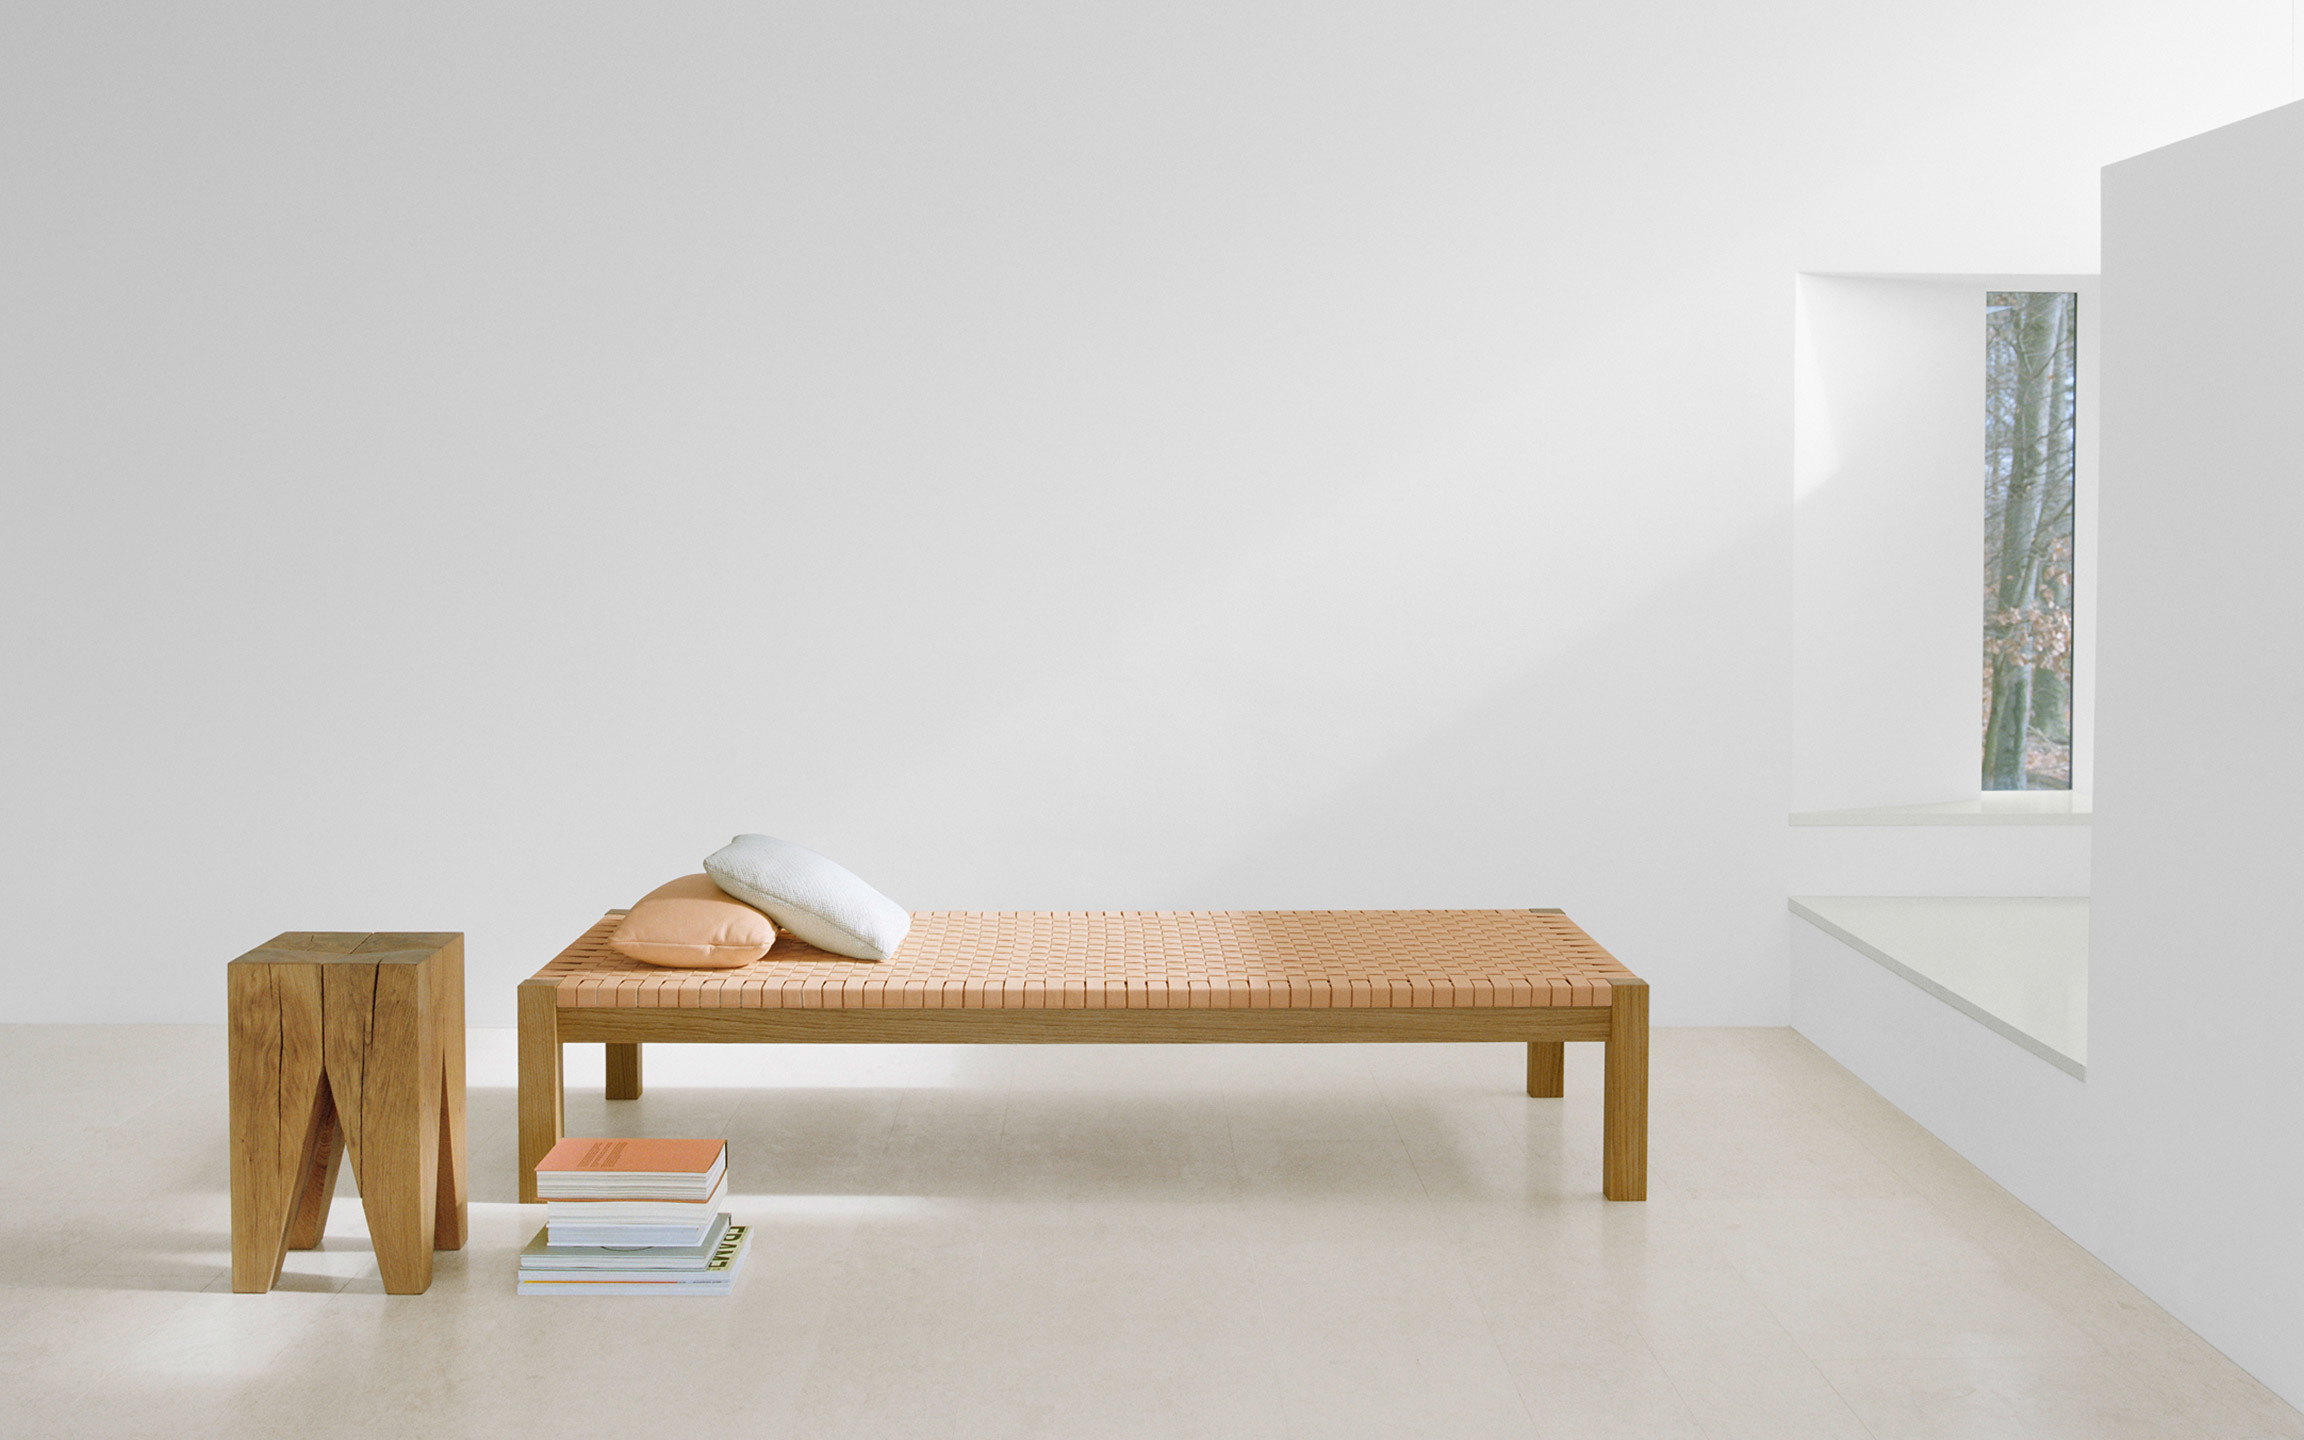 Daybeds & Chaises catalogue image